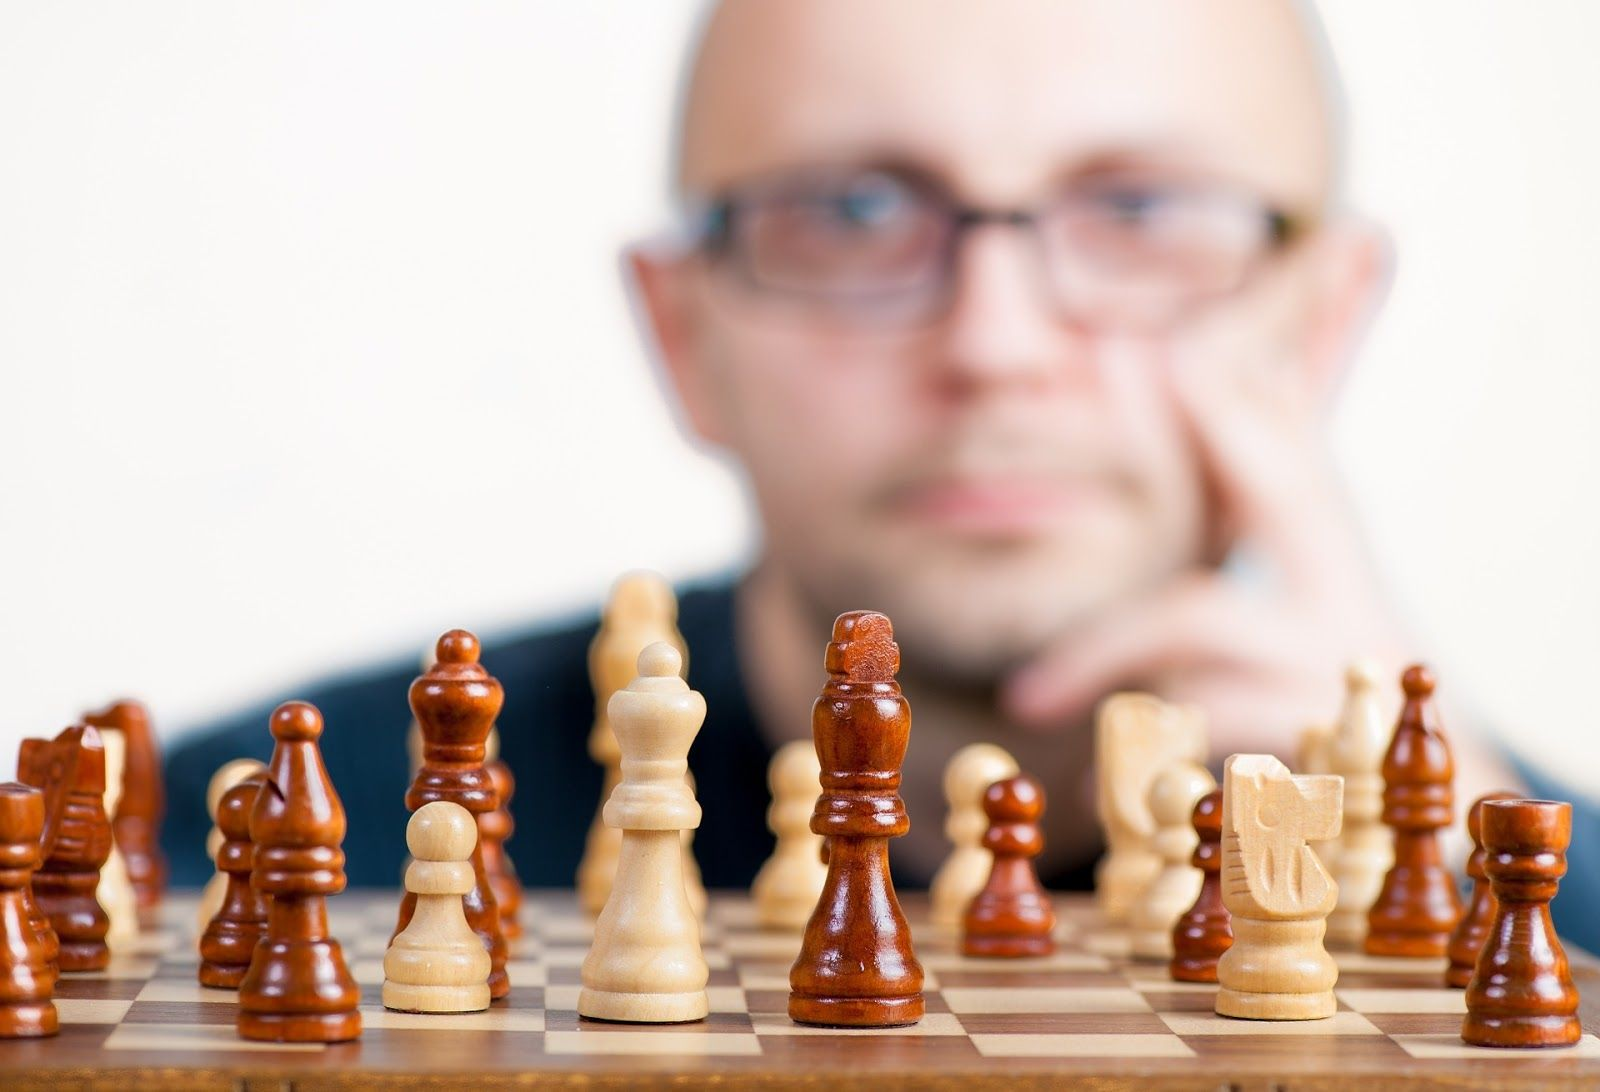 Man staring at chessboard considering next move